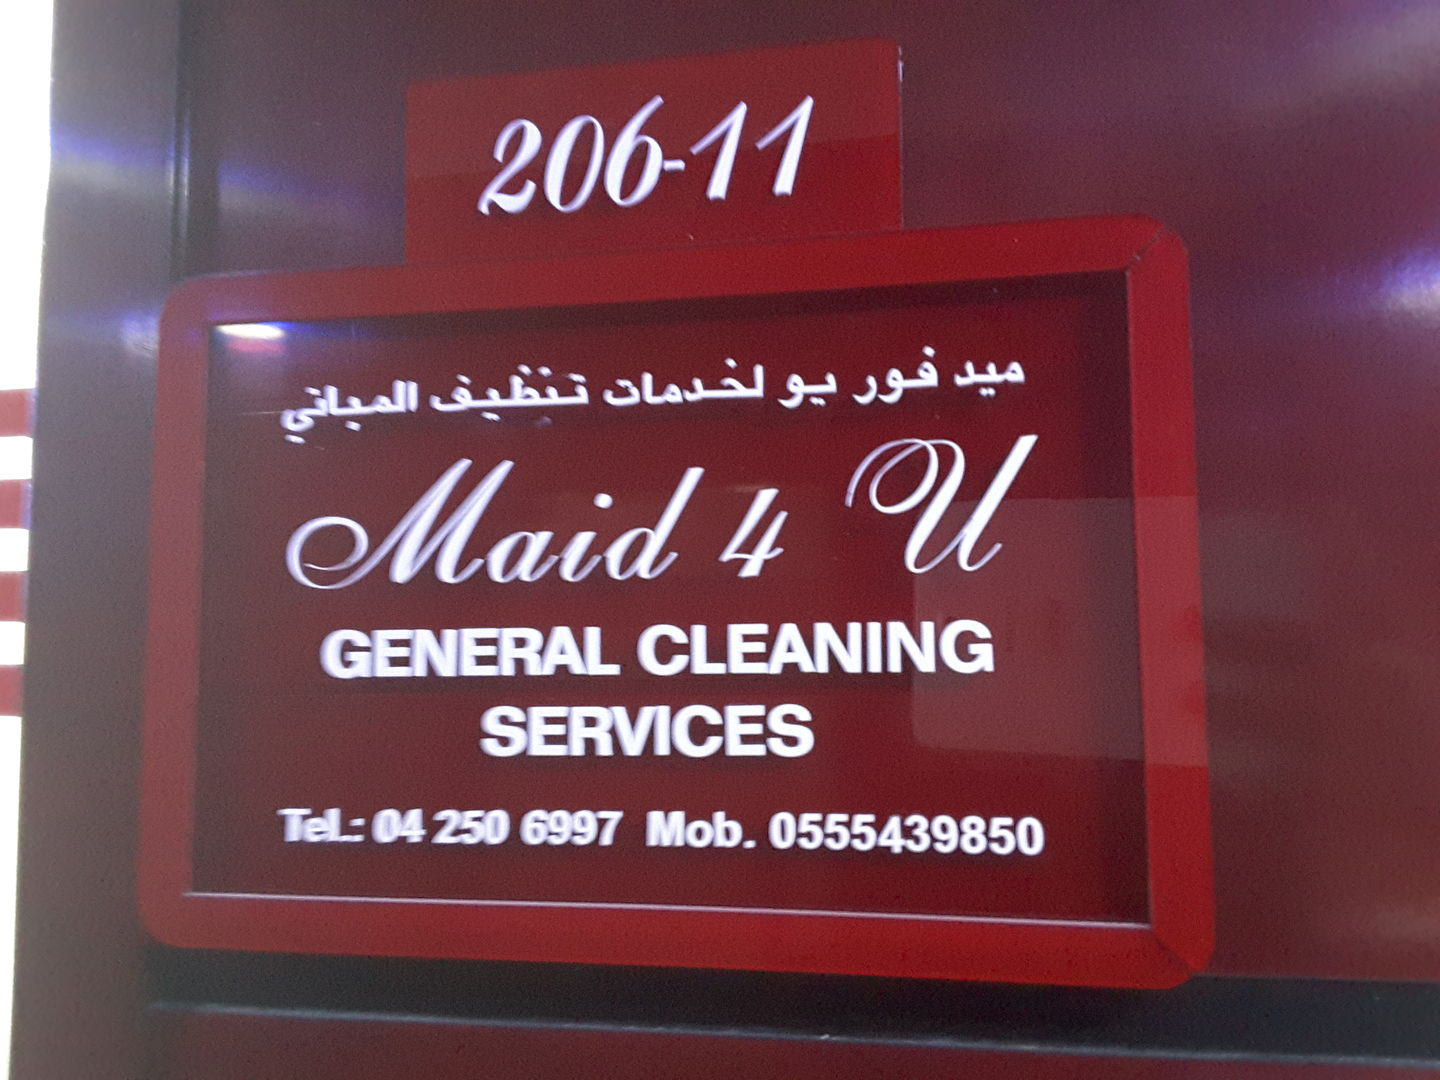 HiDubai-business-maid-4-u-building-cleaning-services-home-cleaning-services-al-khabaisi-dubai-2